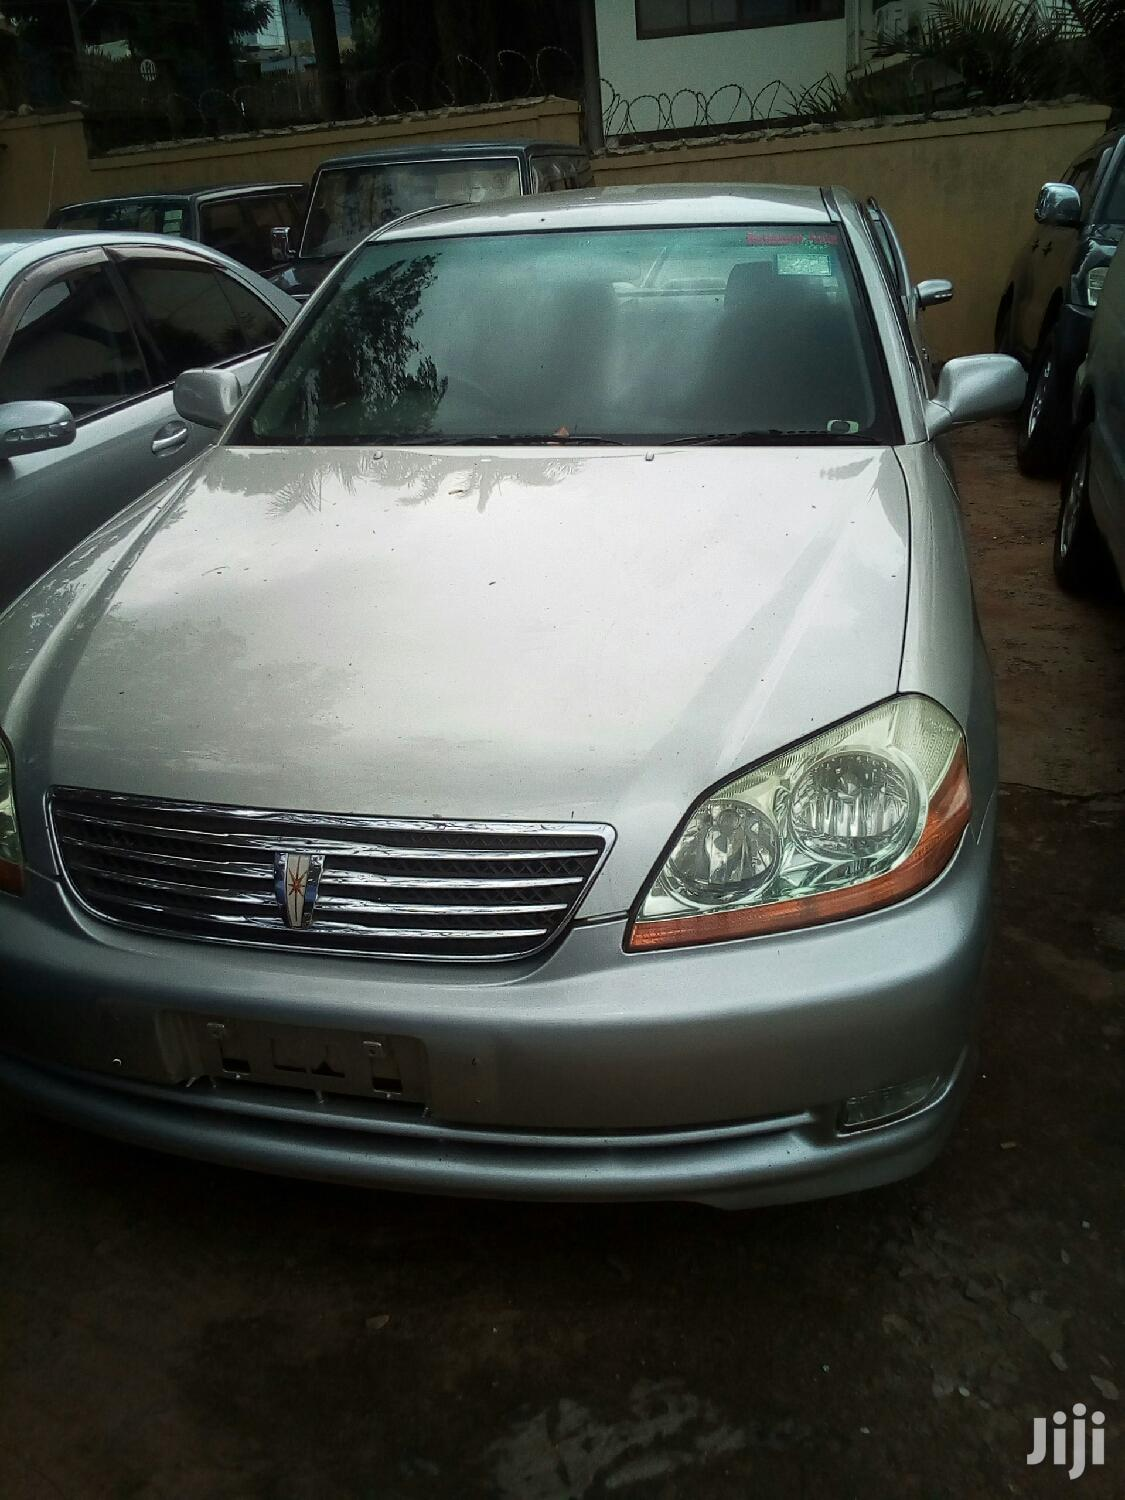 Archive: Toyota Mark II 2003 Silver